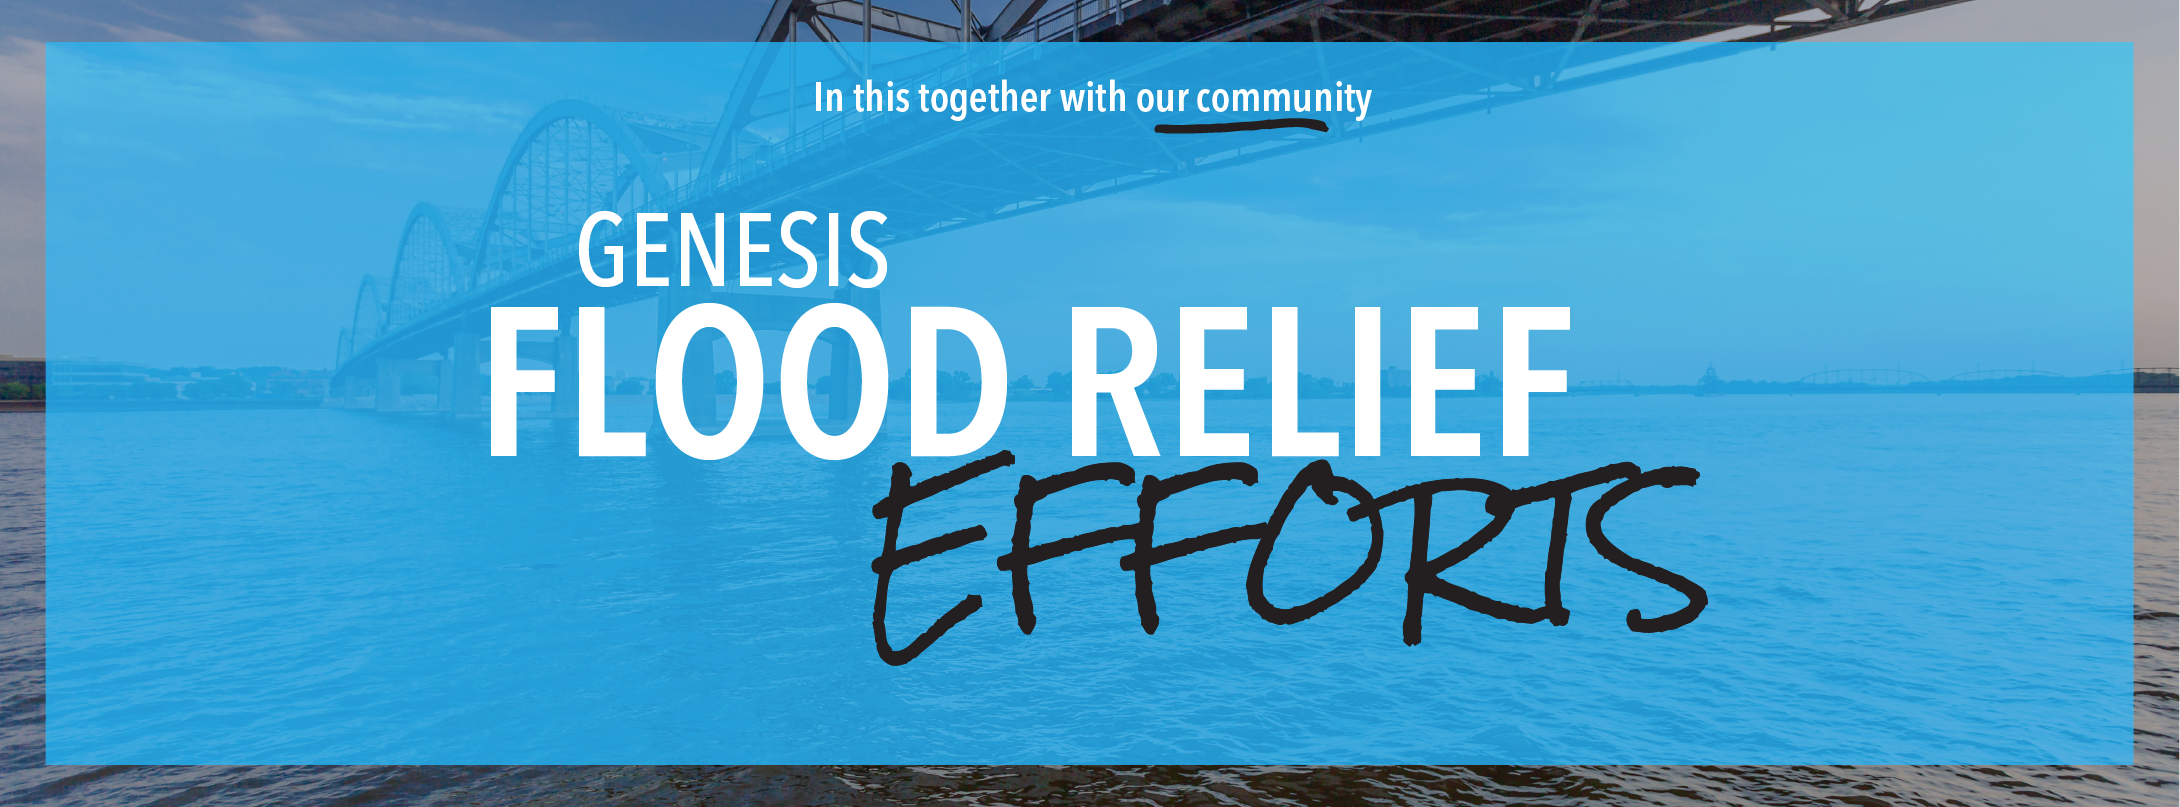 Genesis Flood Relief Efforts